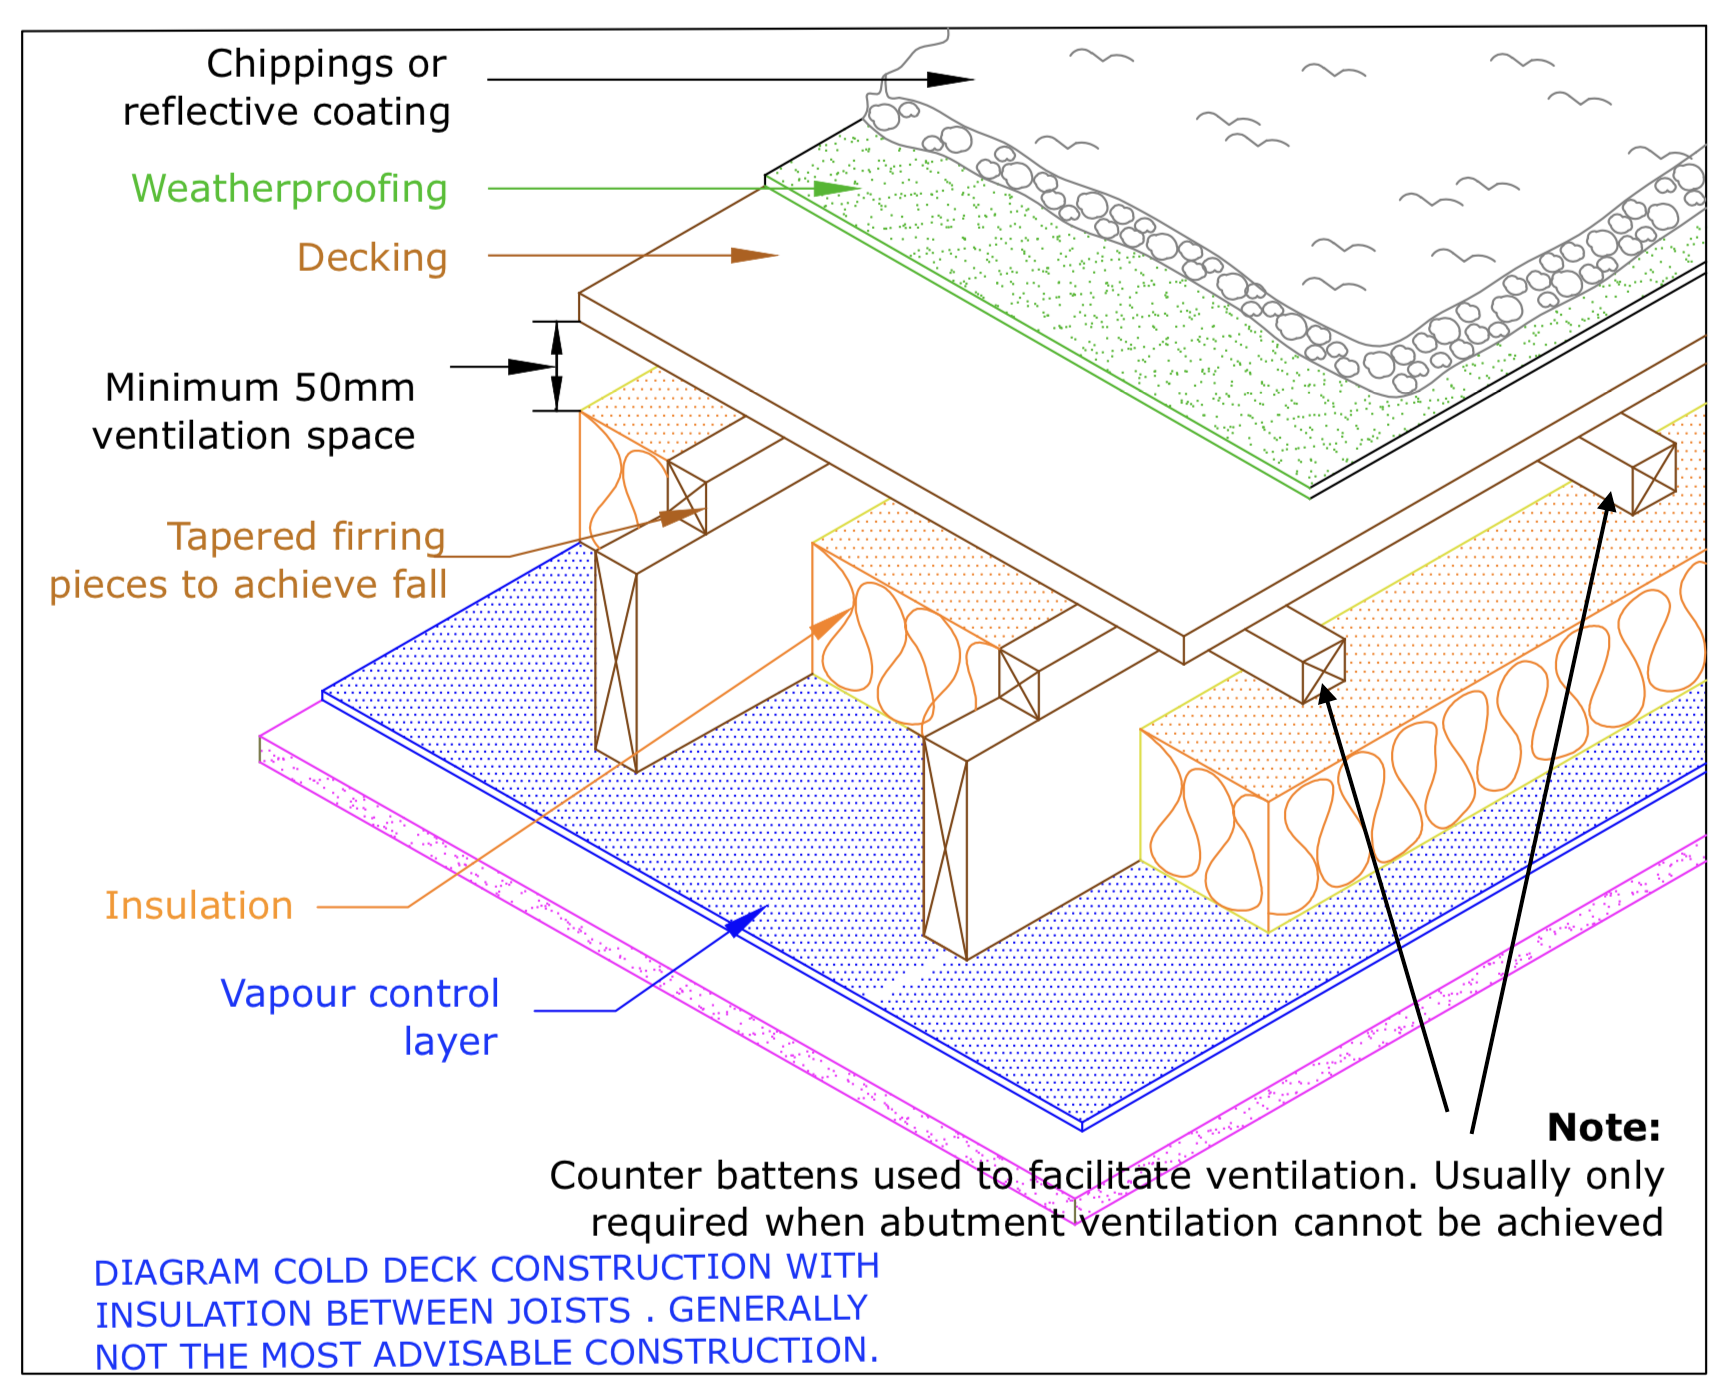 Diagram D76 - Typical cold deck roof construction